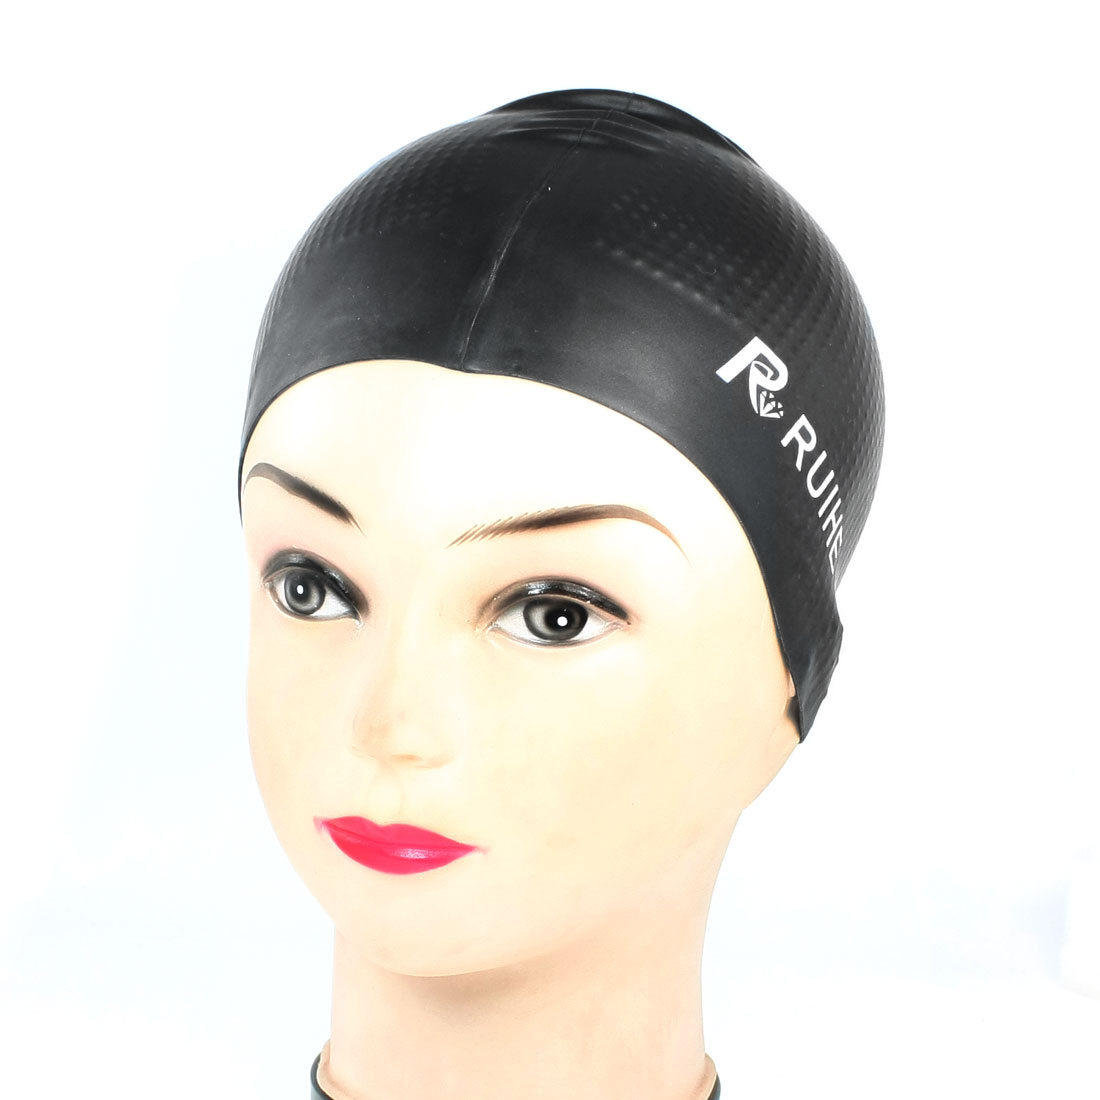 Antislip Stretchable Silicone Diving Swimming Cap Black for Adults